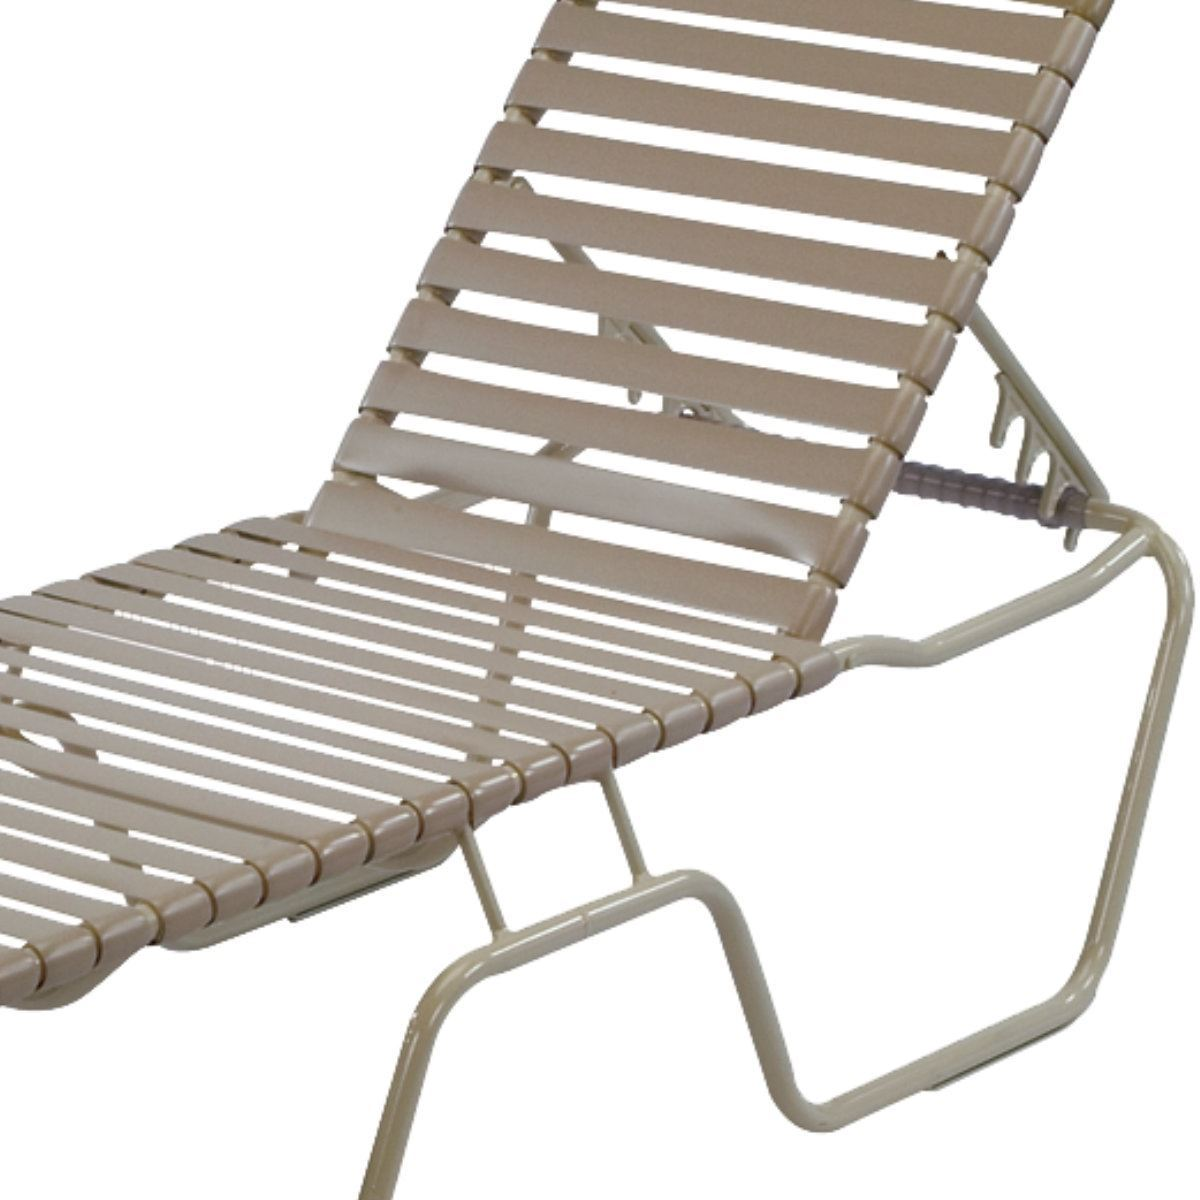 Vinyl Strap Commercial Chaise Lounge Commercial Pool Furniture Pool Furniture Supply